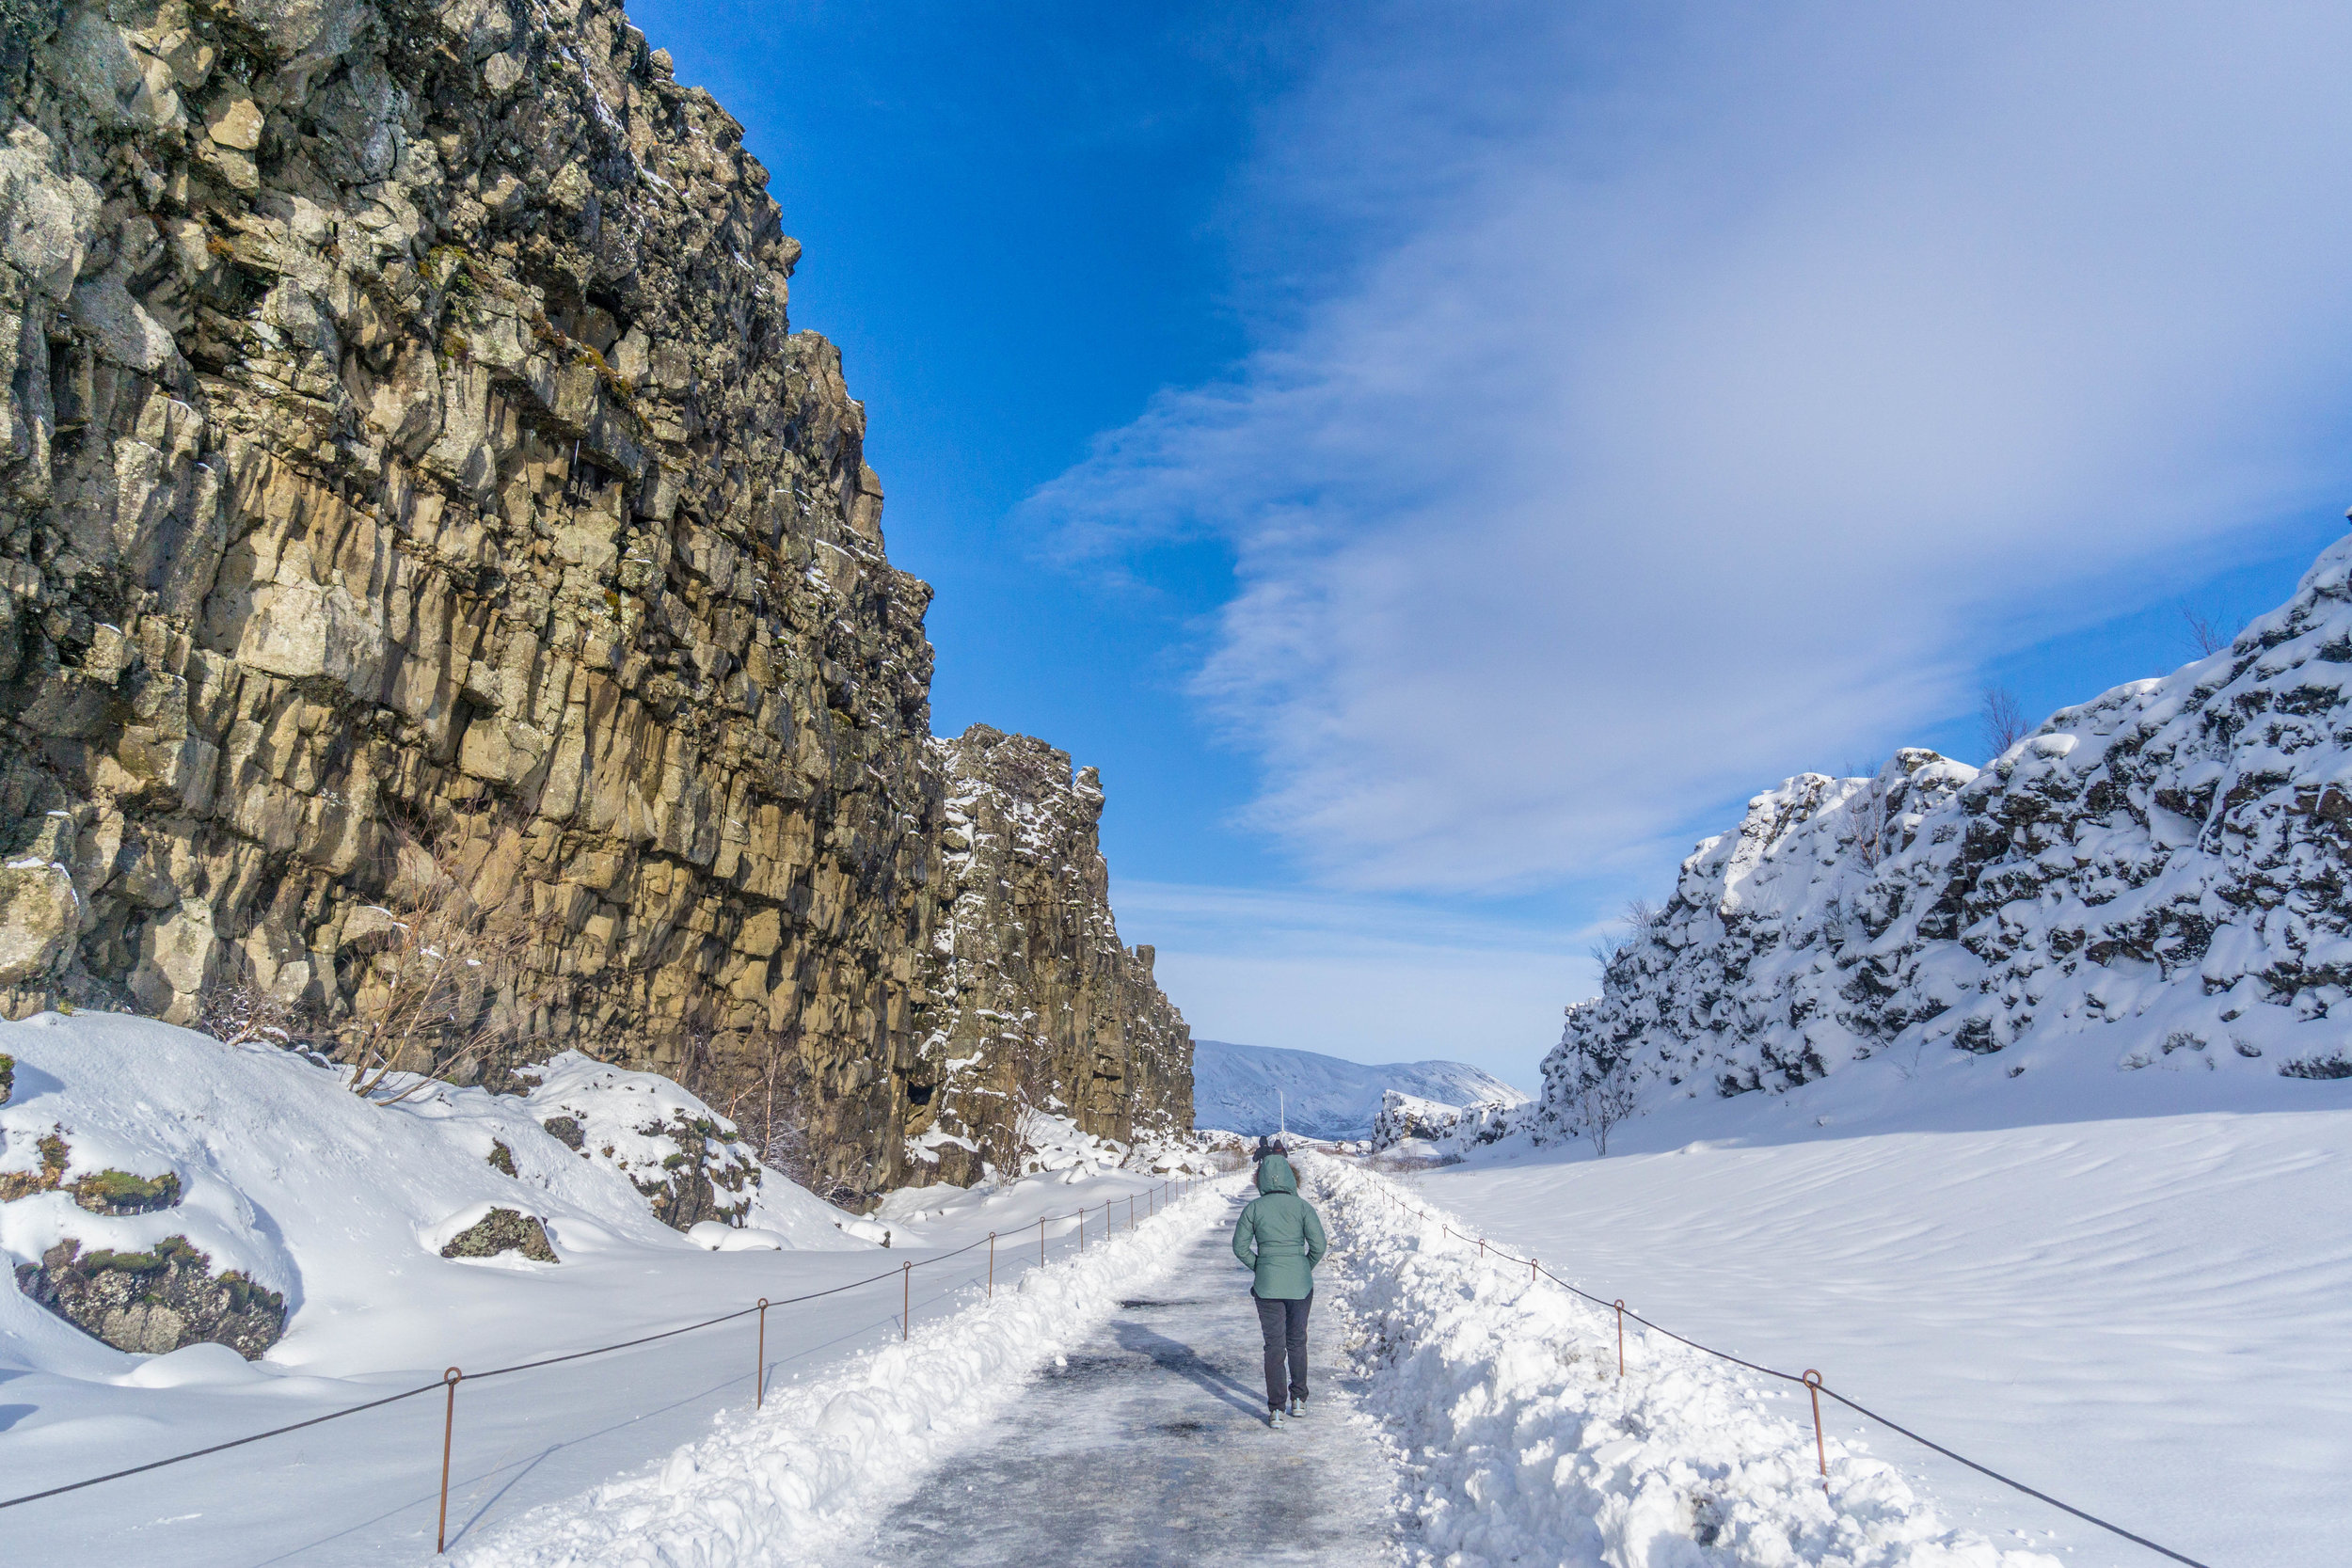 Two places at once in Thingvellir. The Eurasian tectonic plate and the North American tectonic plate.